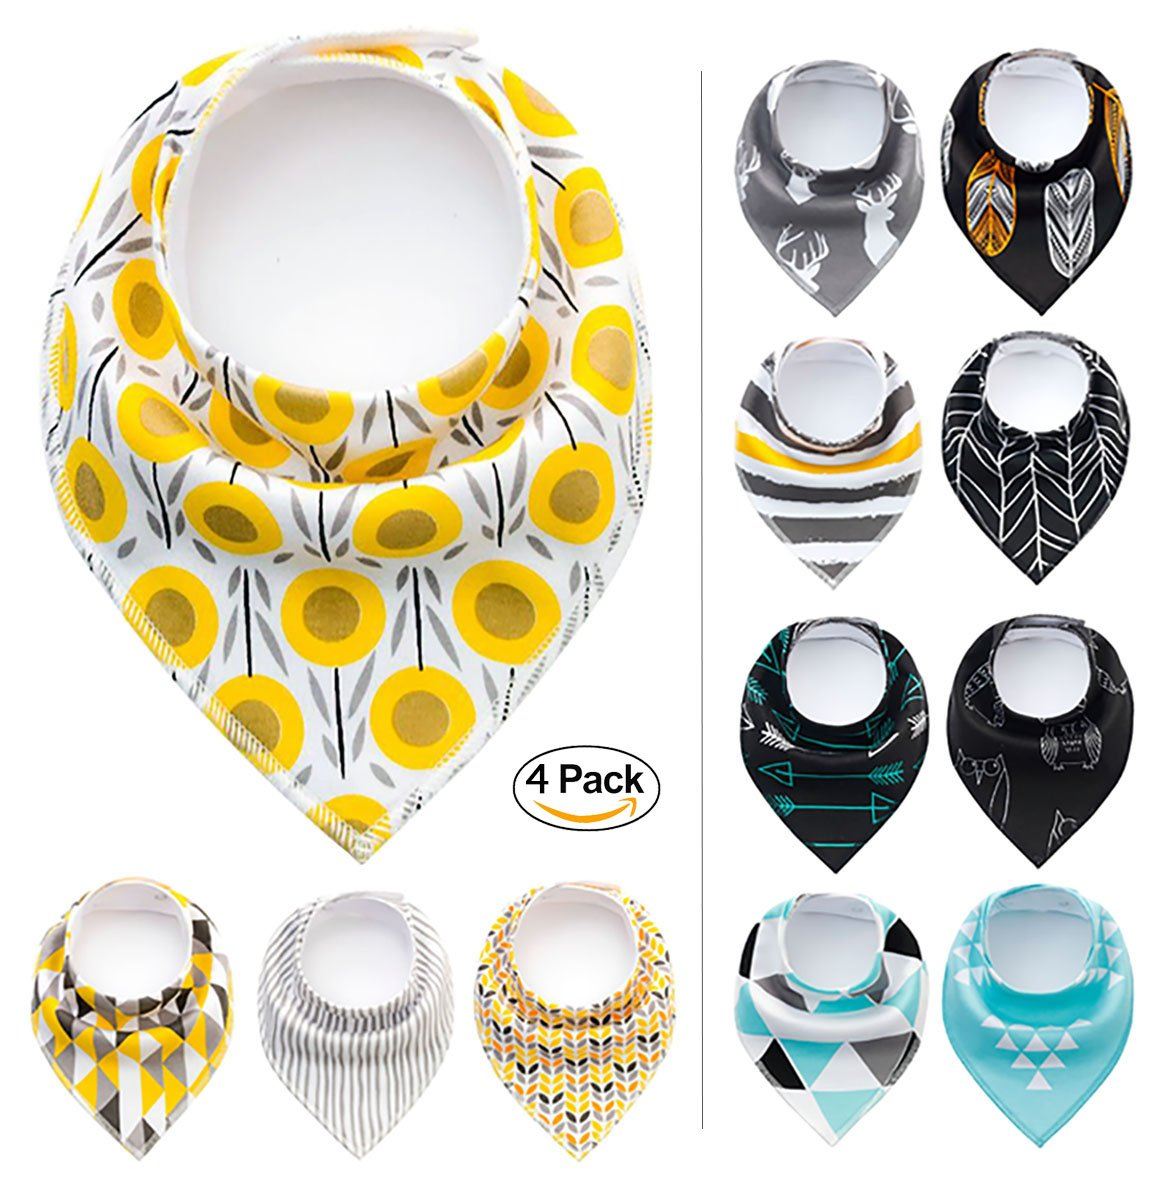 Paws n' Play 4 Piece Fun Bright Color Snap-On Pet Dog Bandana Triangle Scarf Bibs - Accessories for Dogs, Puppy, Cats - Small/Medium, Soft Cotton (Dewshine Poppy) by Paws n' Play (Image #1)